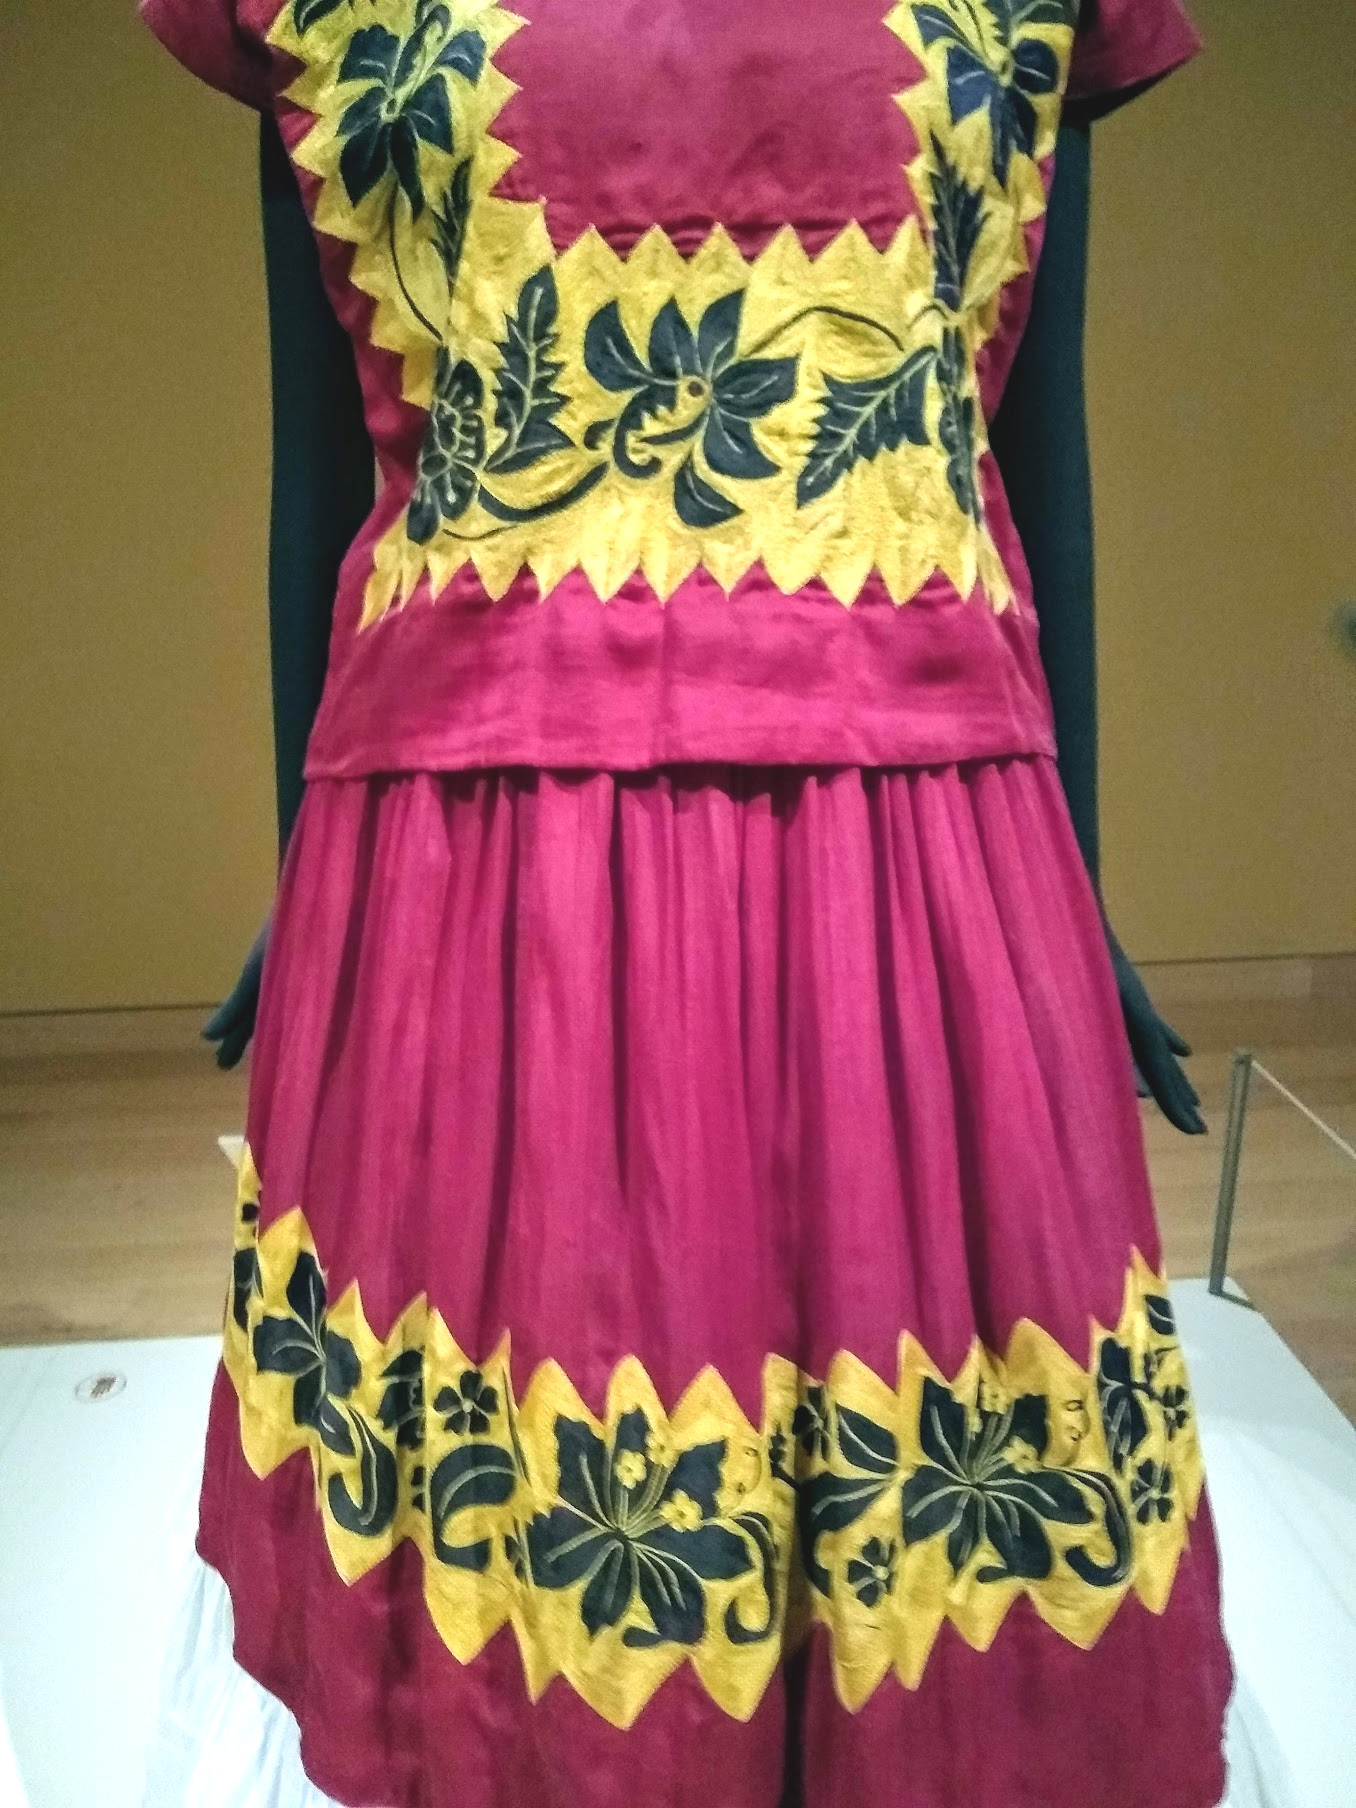 An outfit found in the locked bathroom. It belonged to Frida Kahlo.